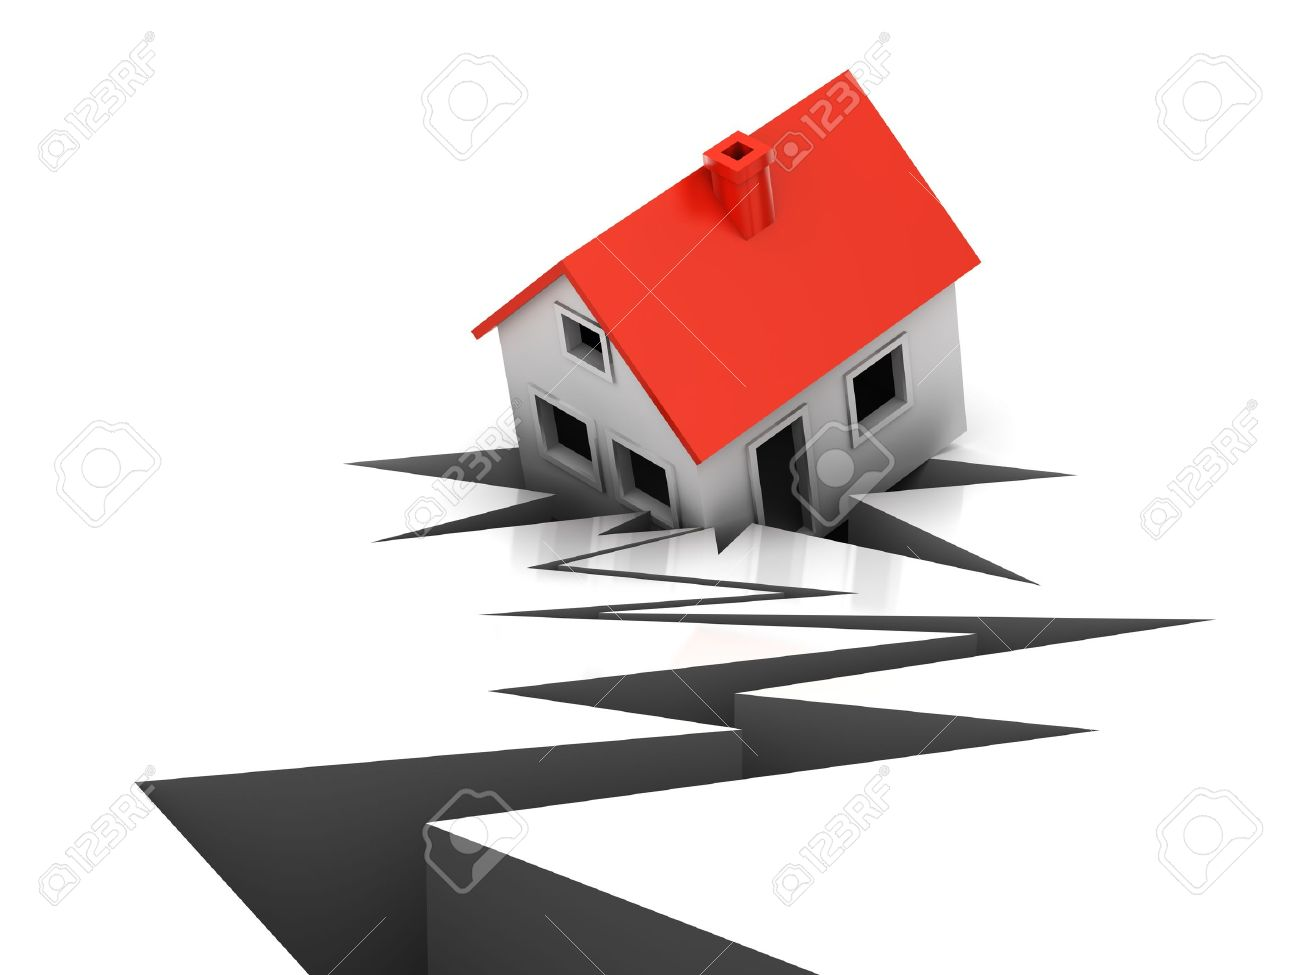 The house has failed in a crack during earthquake Stock Photo - 11575537